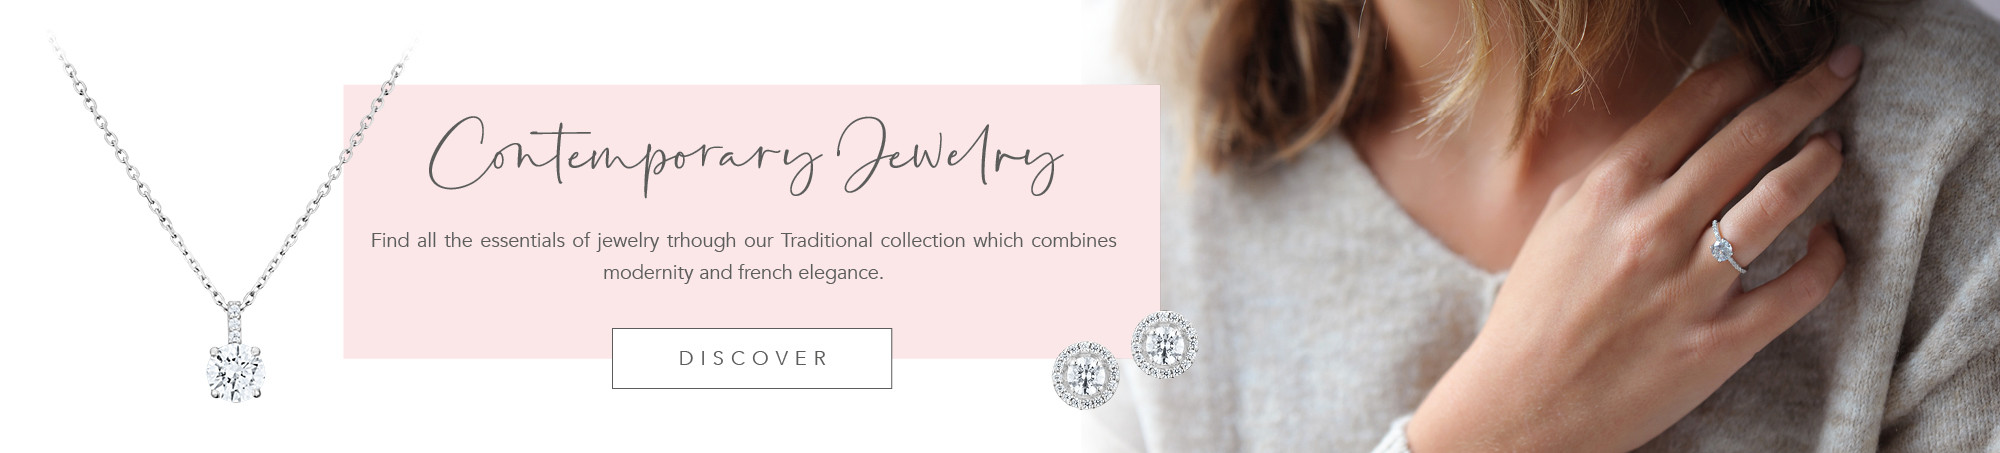 Traditional collection, an inspiring jewelery collection for all women.